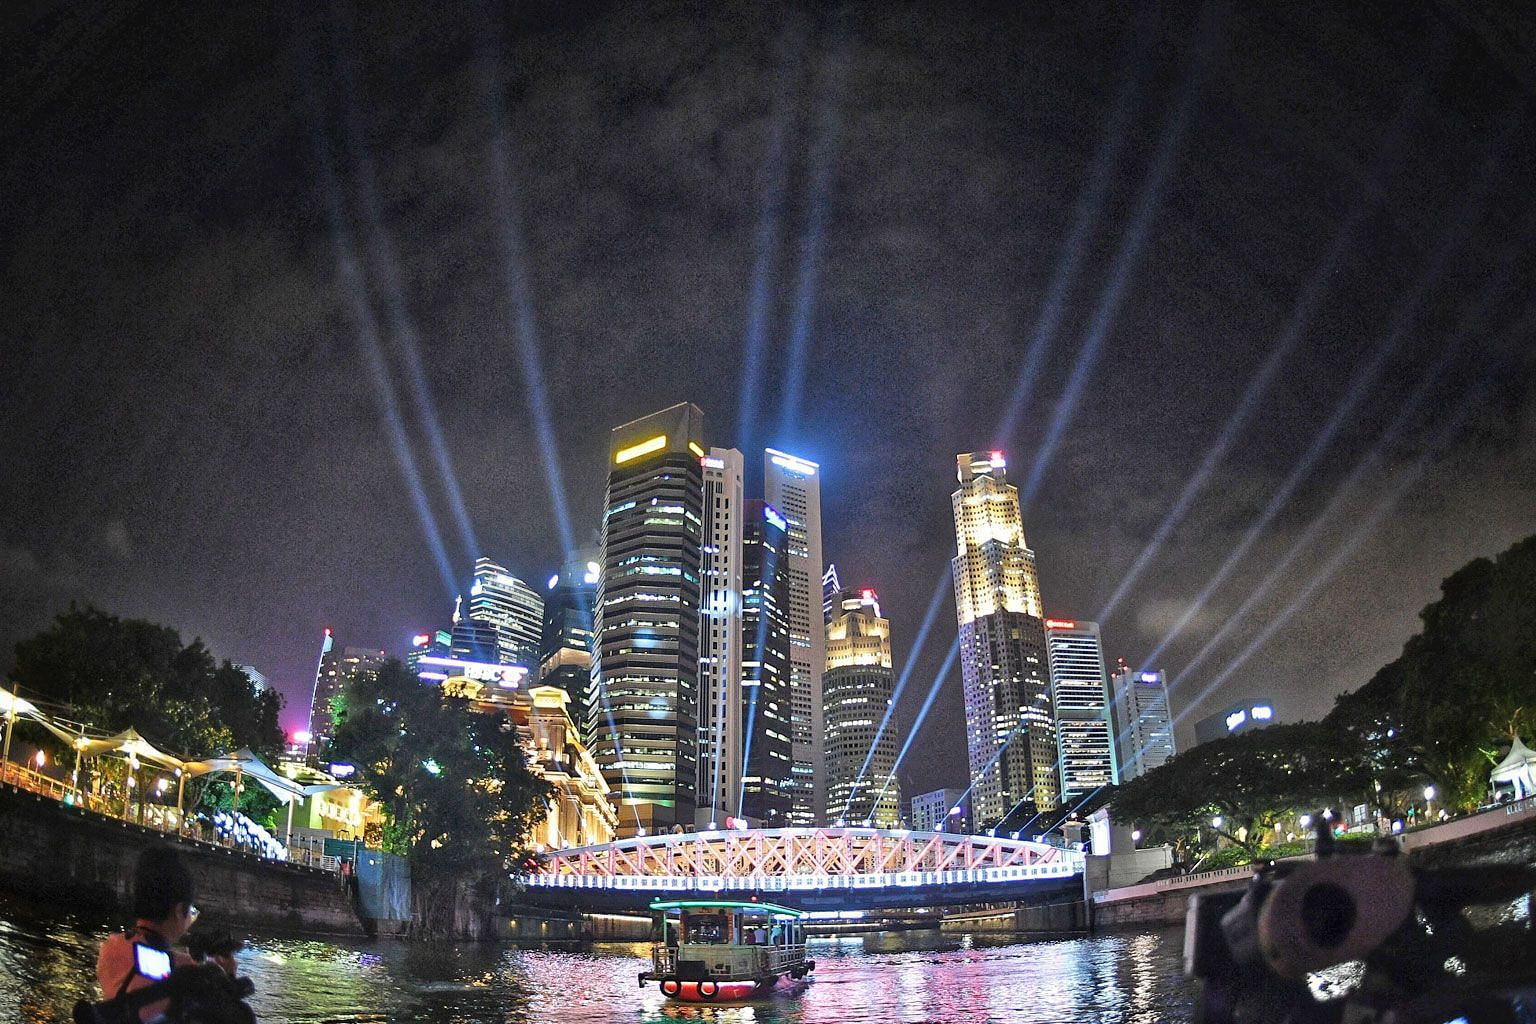 The Bicentennial Bonus and Bicentennial Community Fund are initiatives that will be launched to mark the bicentennial year. The Bicentennial Bonus includes GST Voucher cash payouts for lower-income Singaporeans, personal income tax rebates for all ta